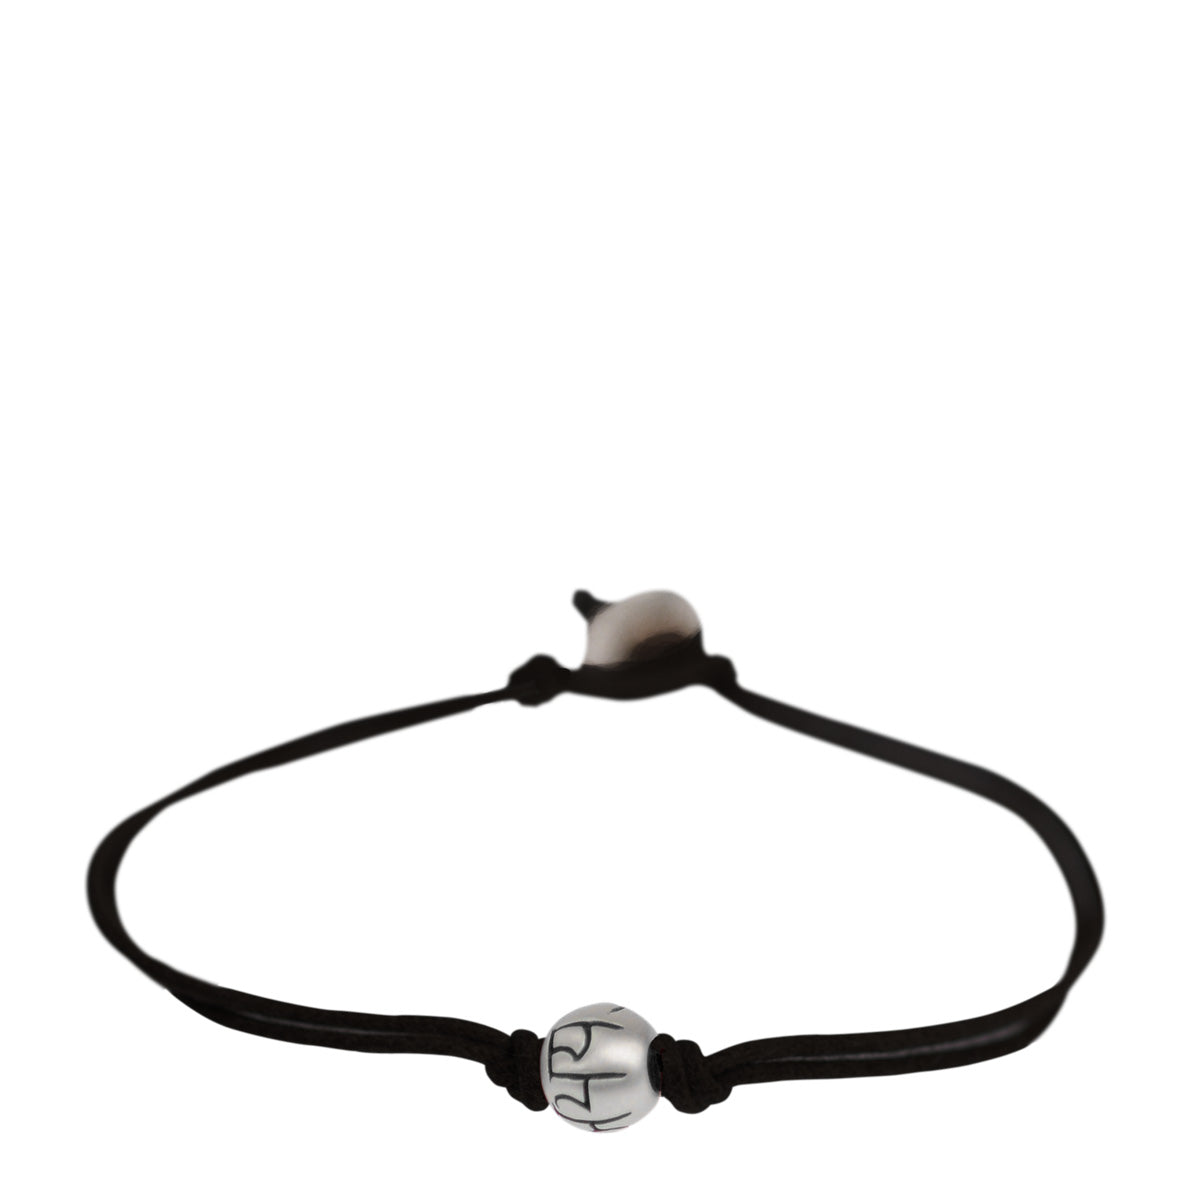 Sterling Silver Fearlessness Bead Bracelet on Black Cord with Button Closure